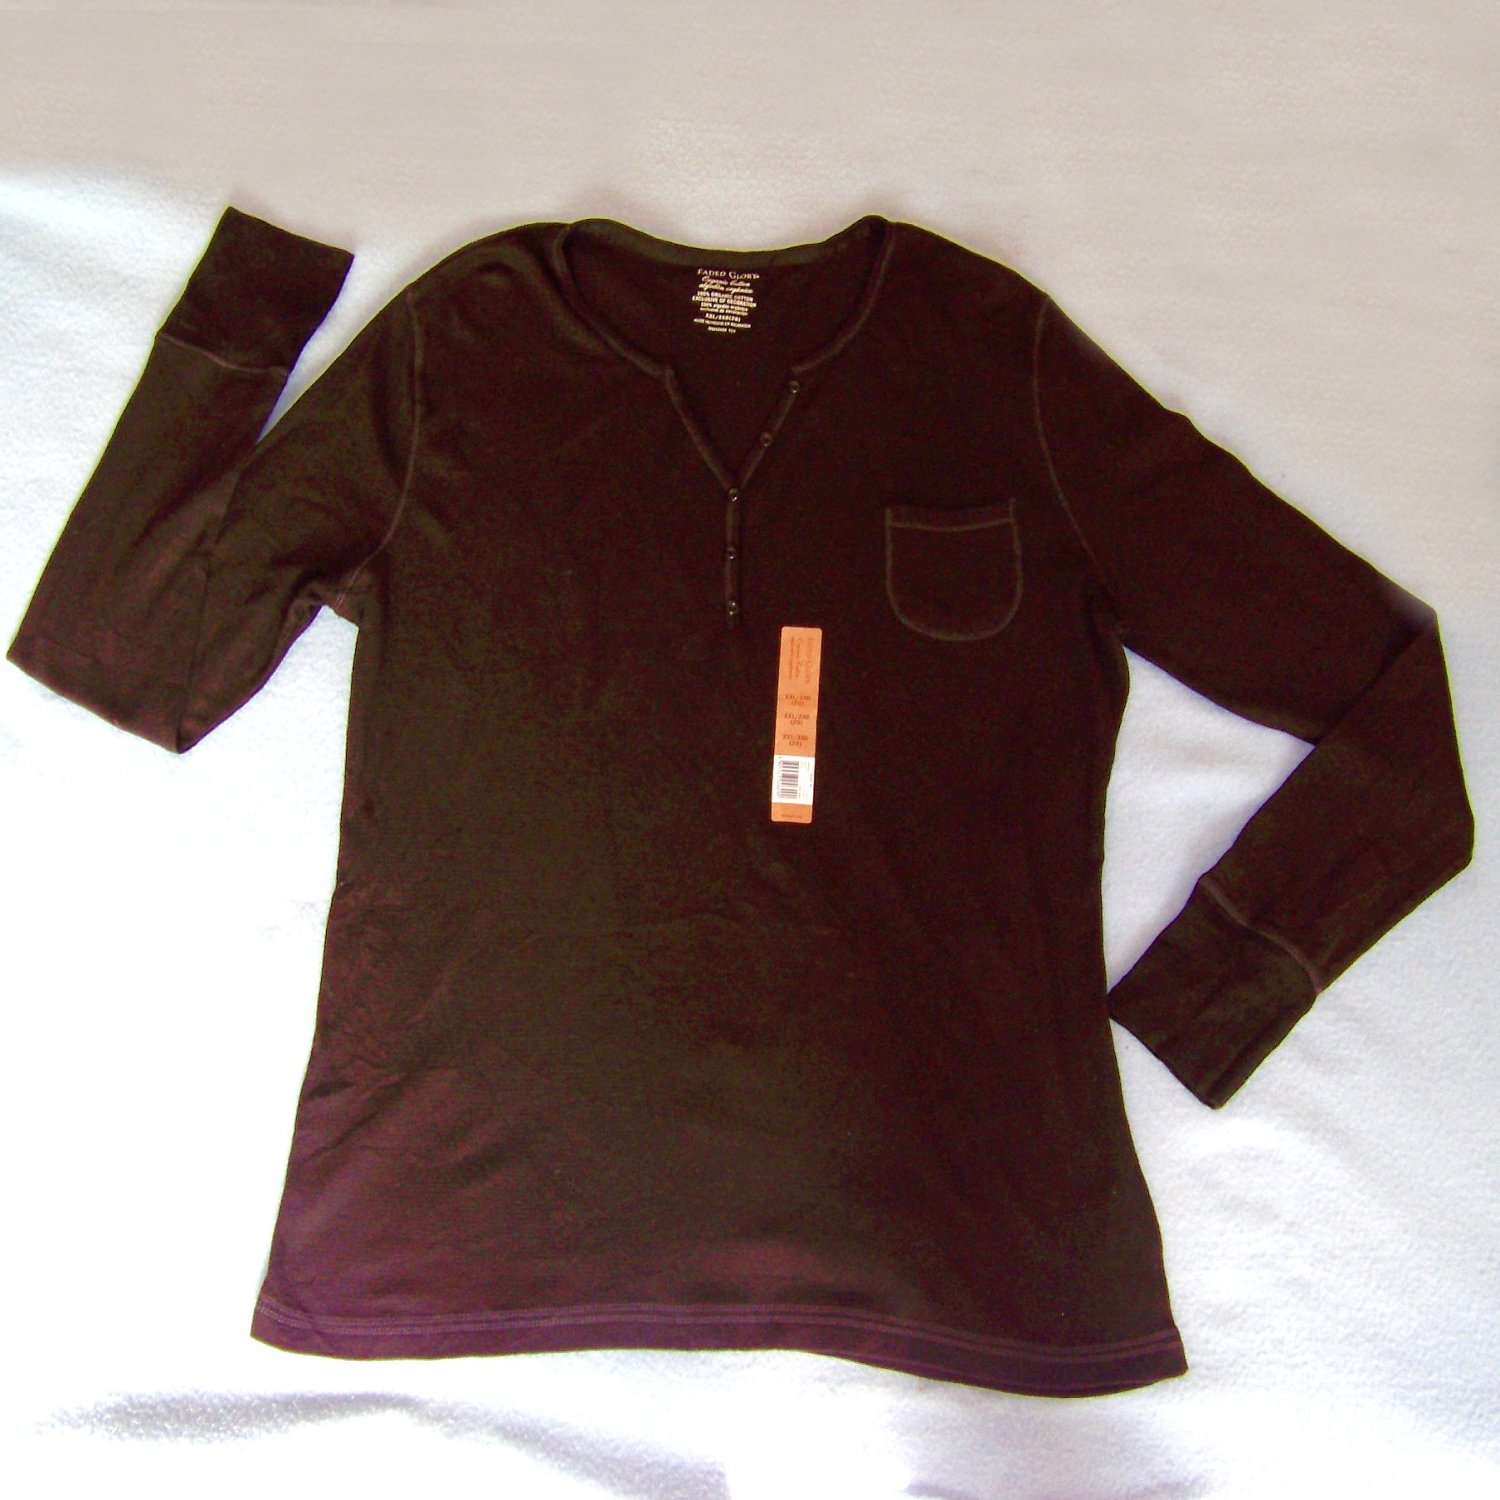 Faded glory organic cotton thermal shirt black size 2X new with tag